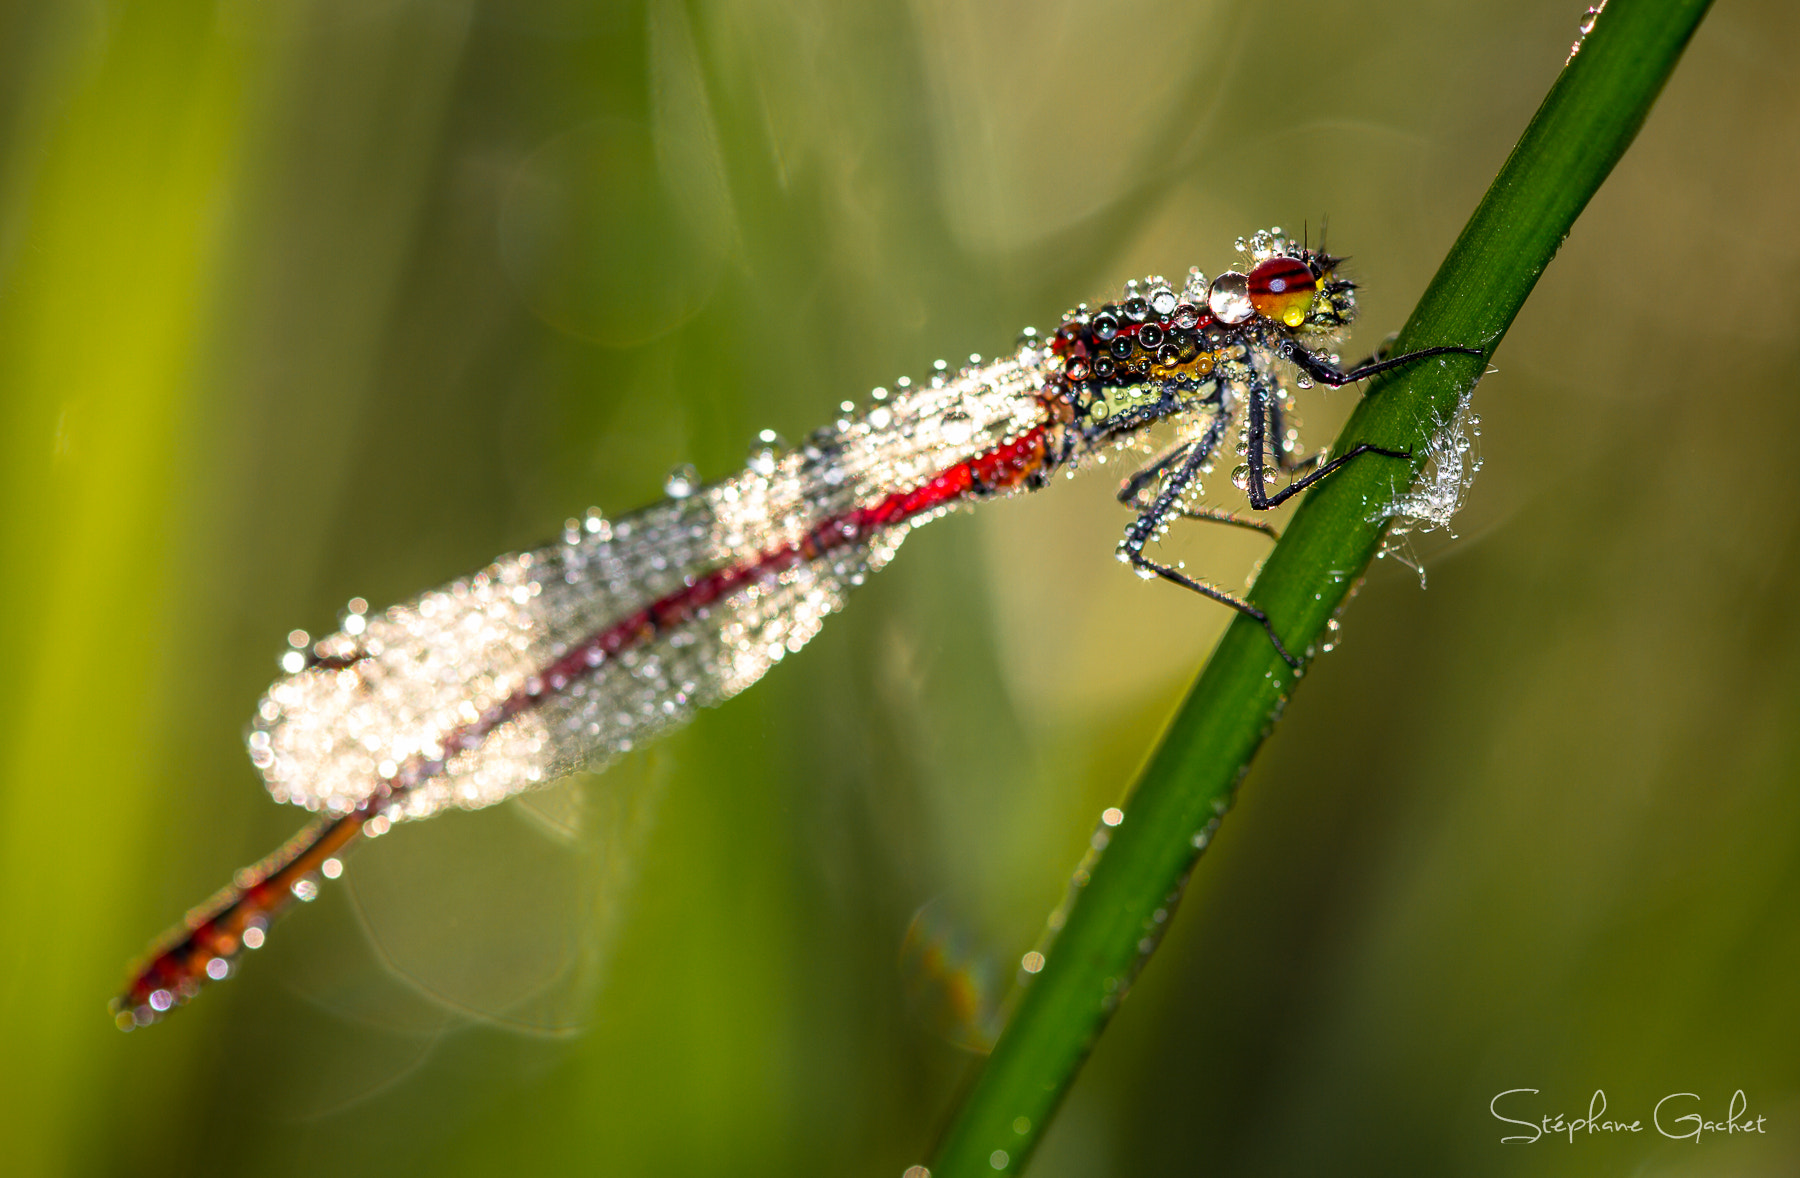 Photograph Humidagrion by Stéphane Gachet on 500px